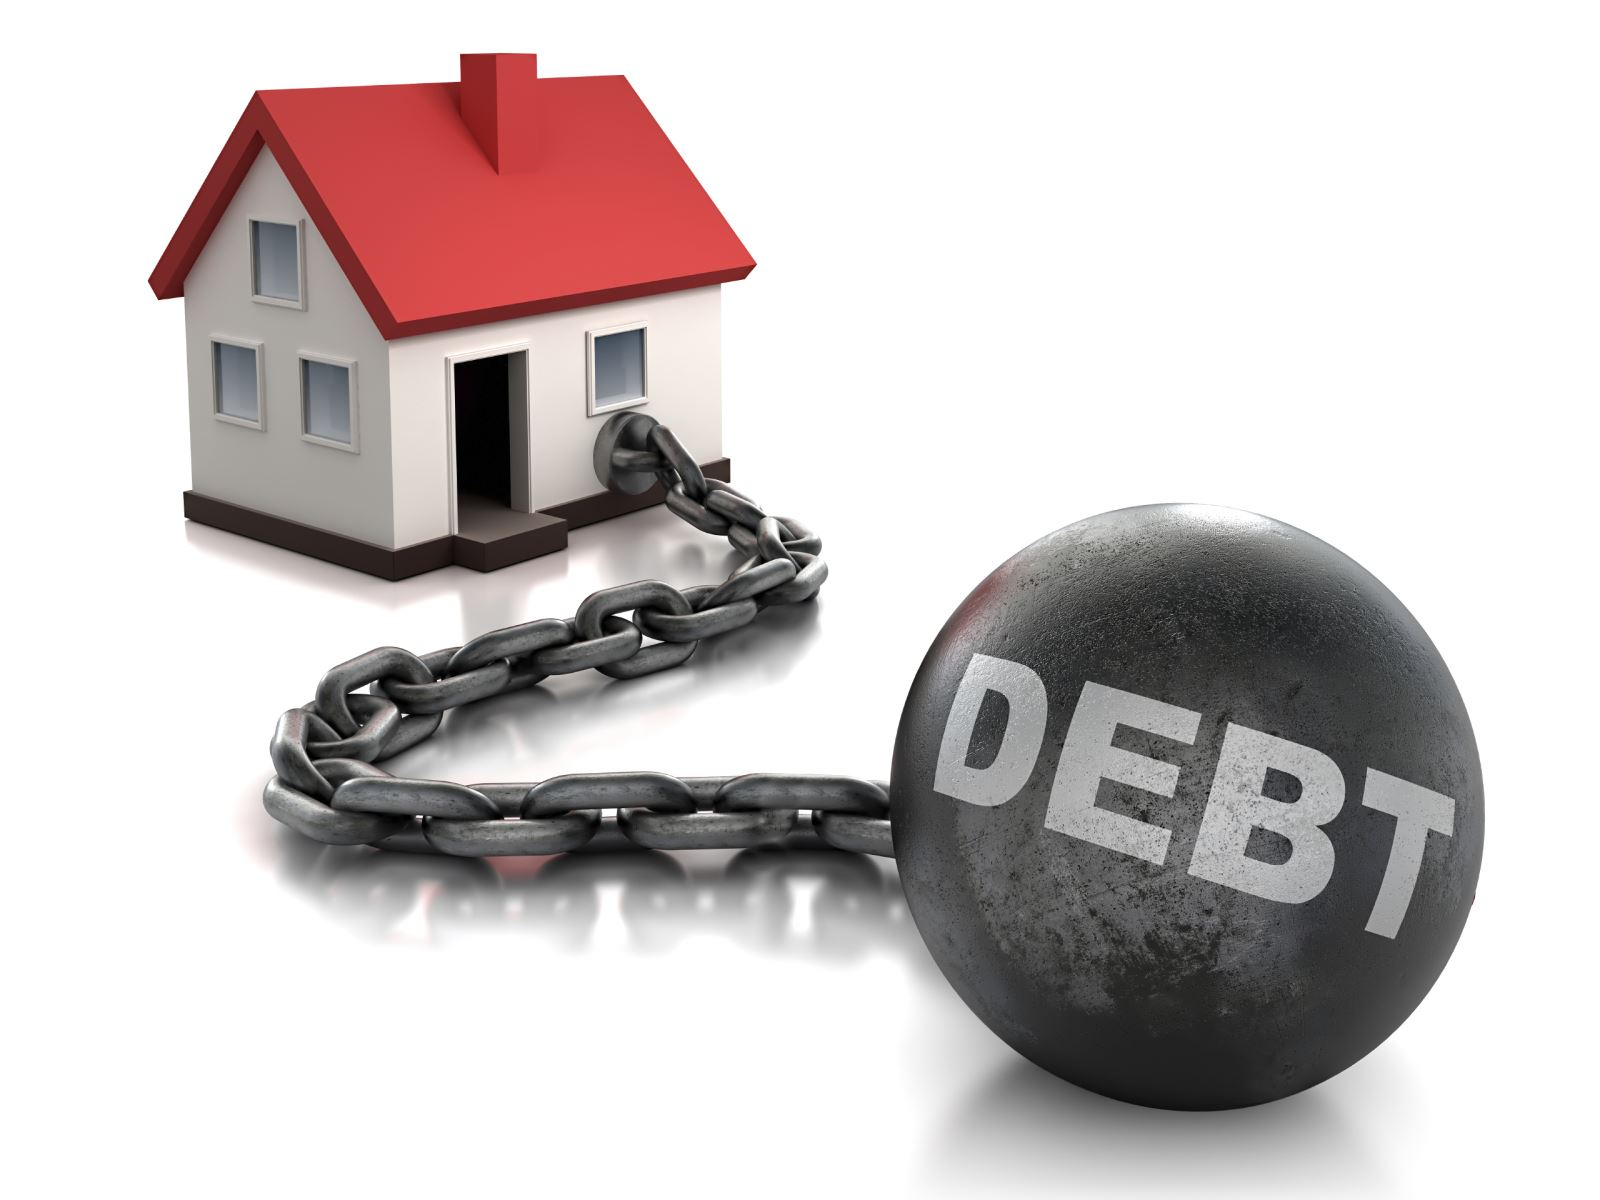 No slowdown in household debt